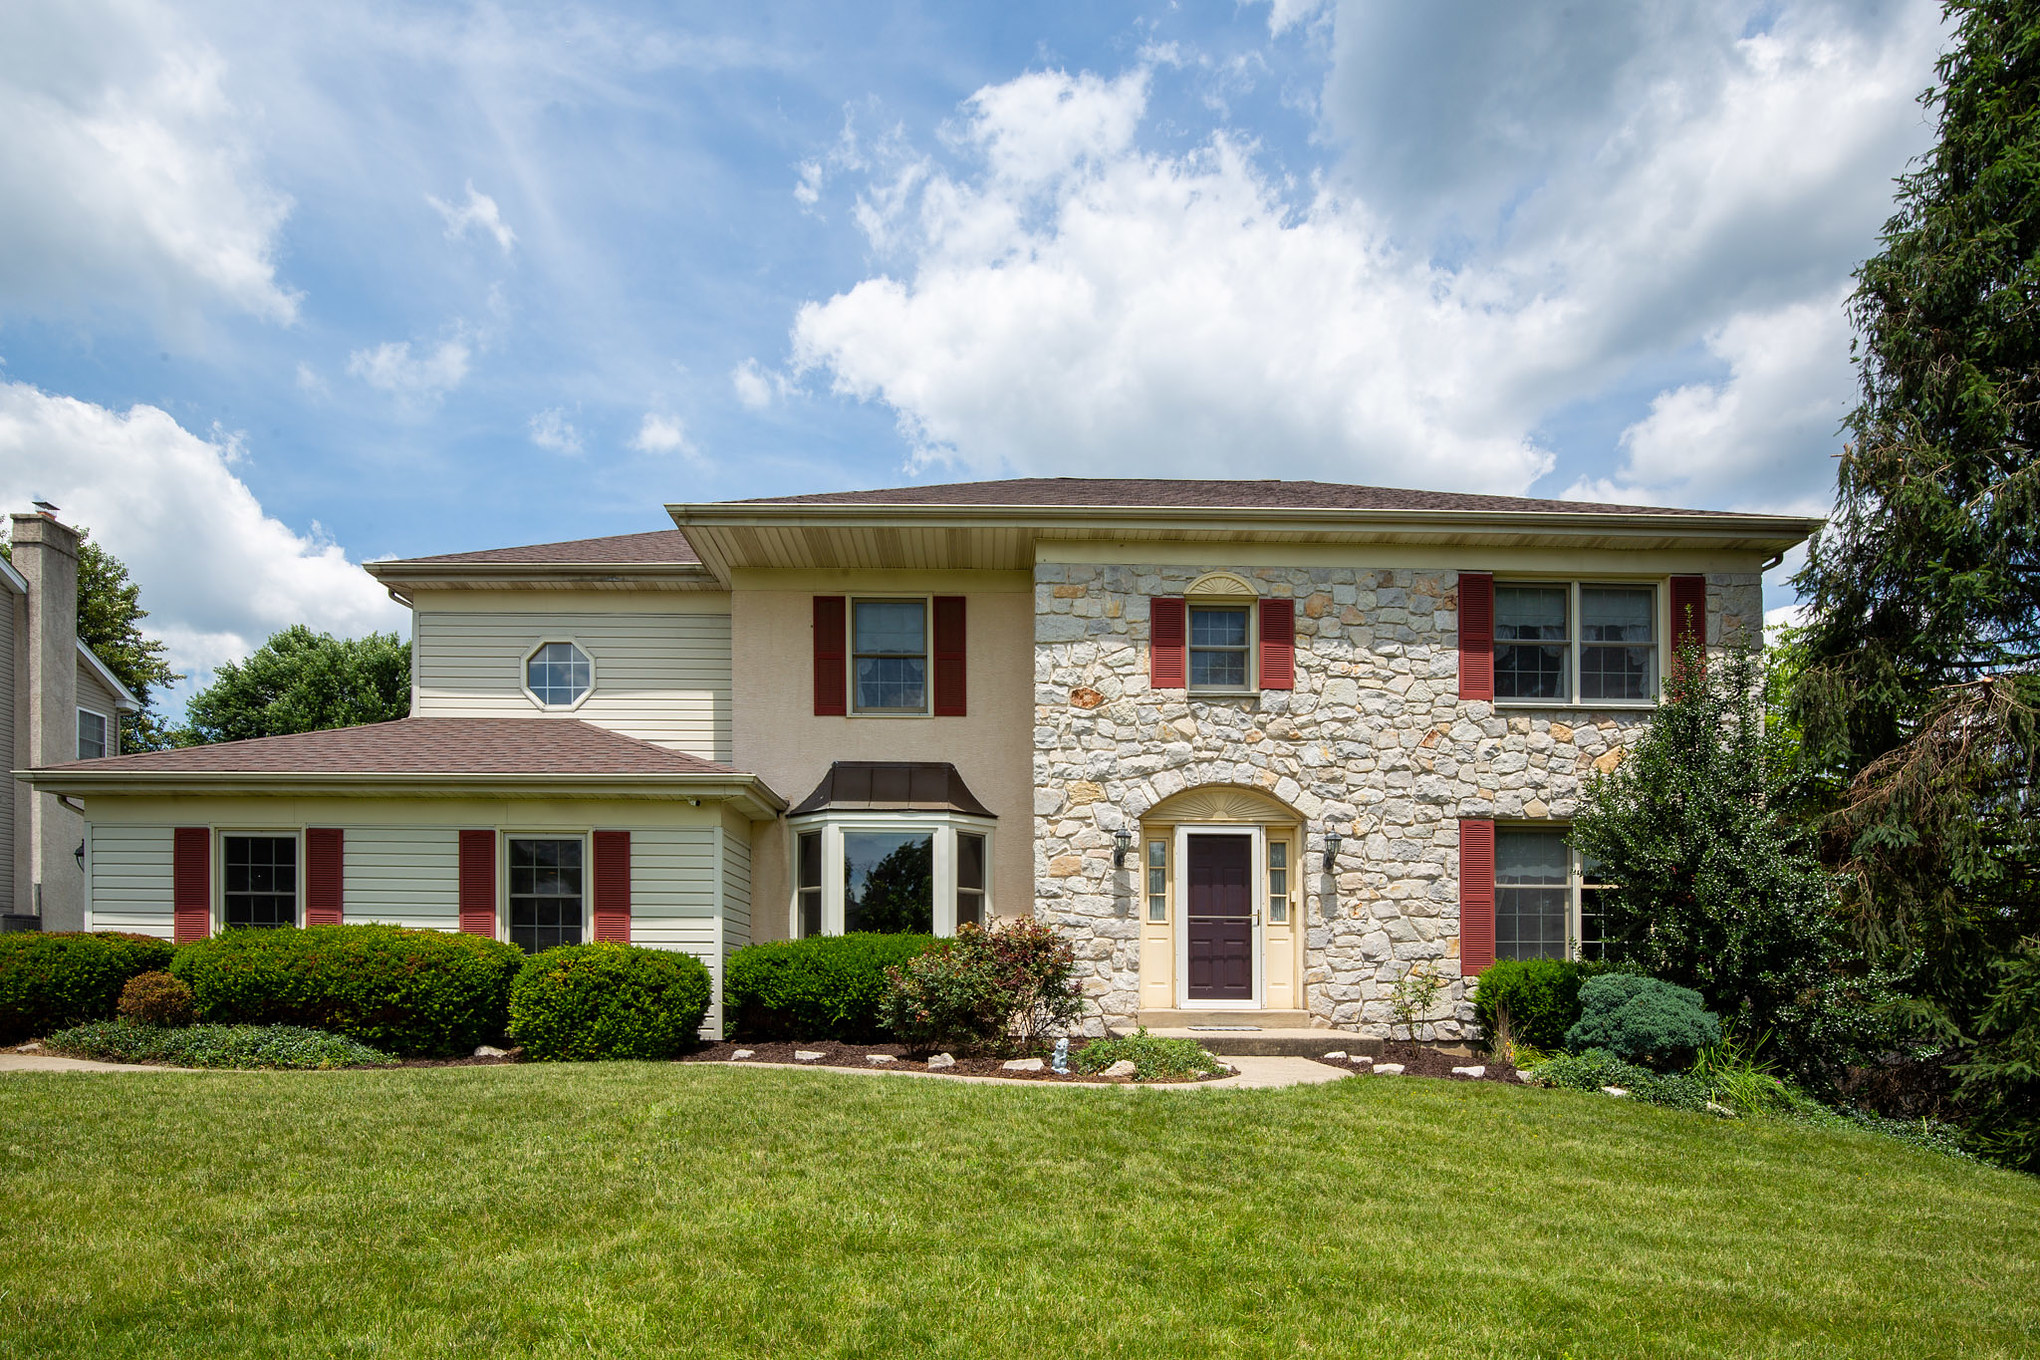 112 Valley View Cir, Phoenixville, P